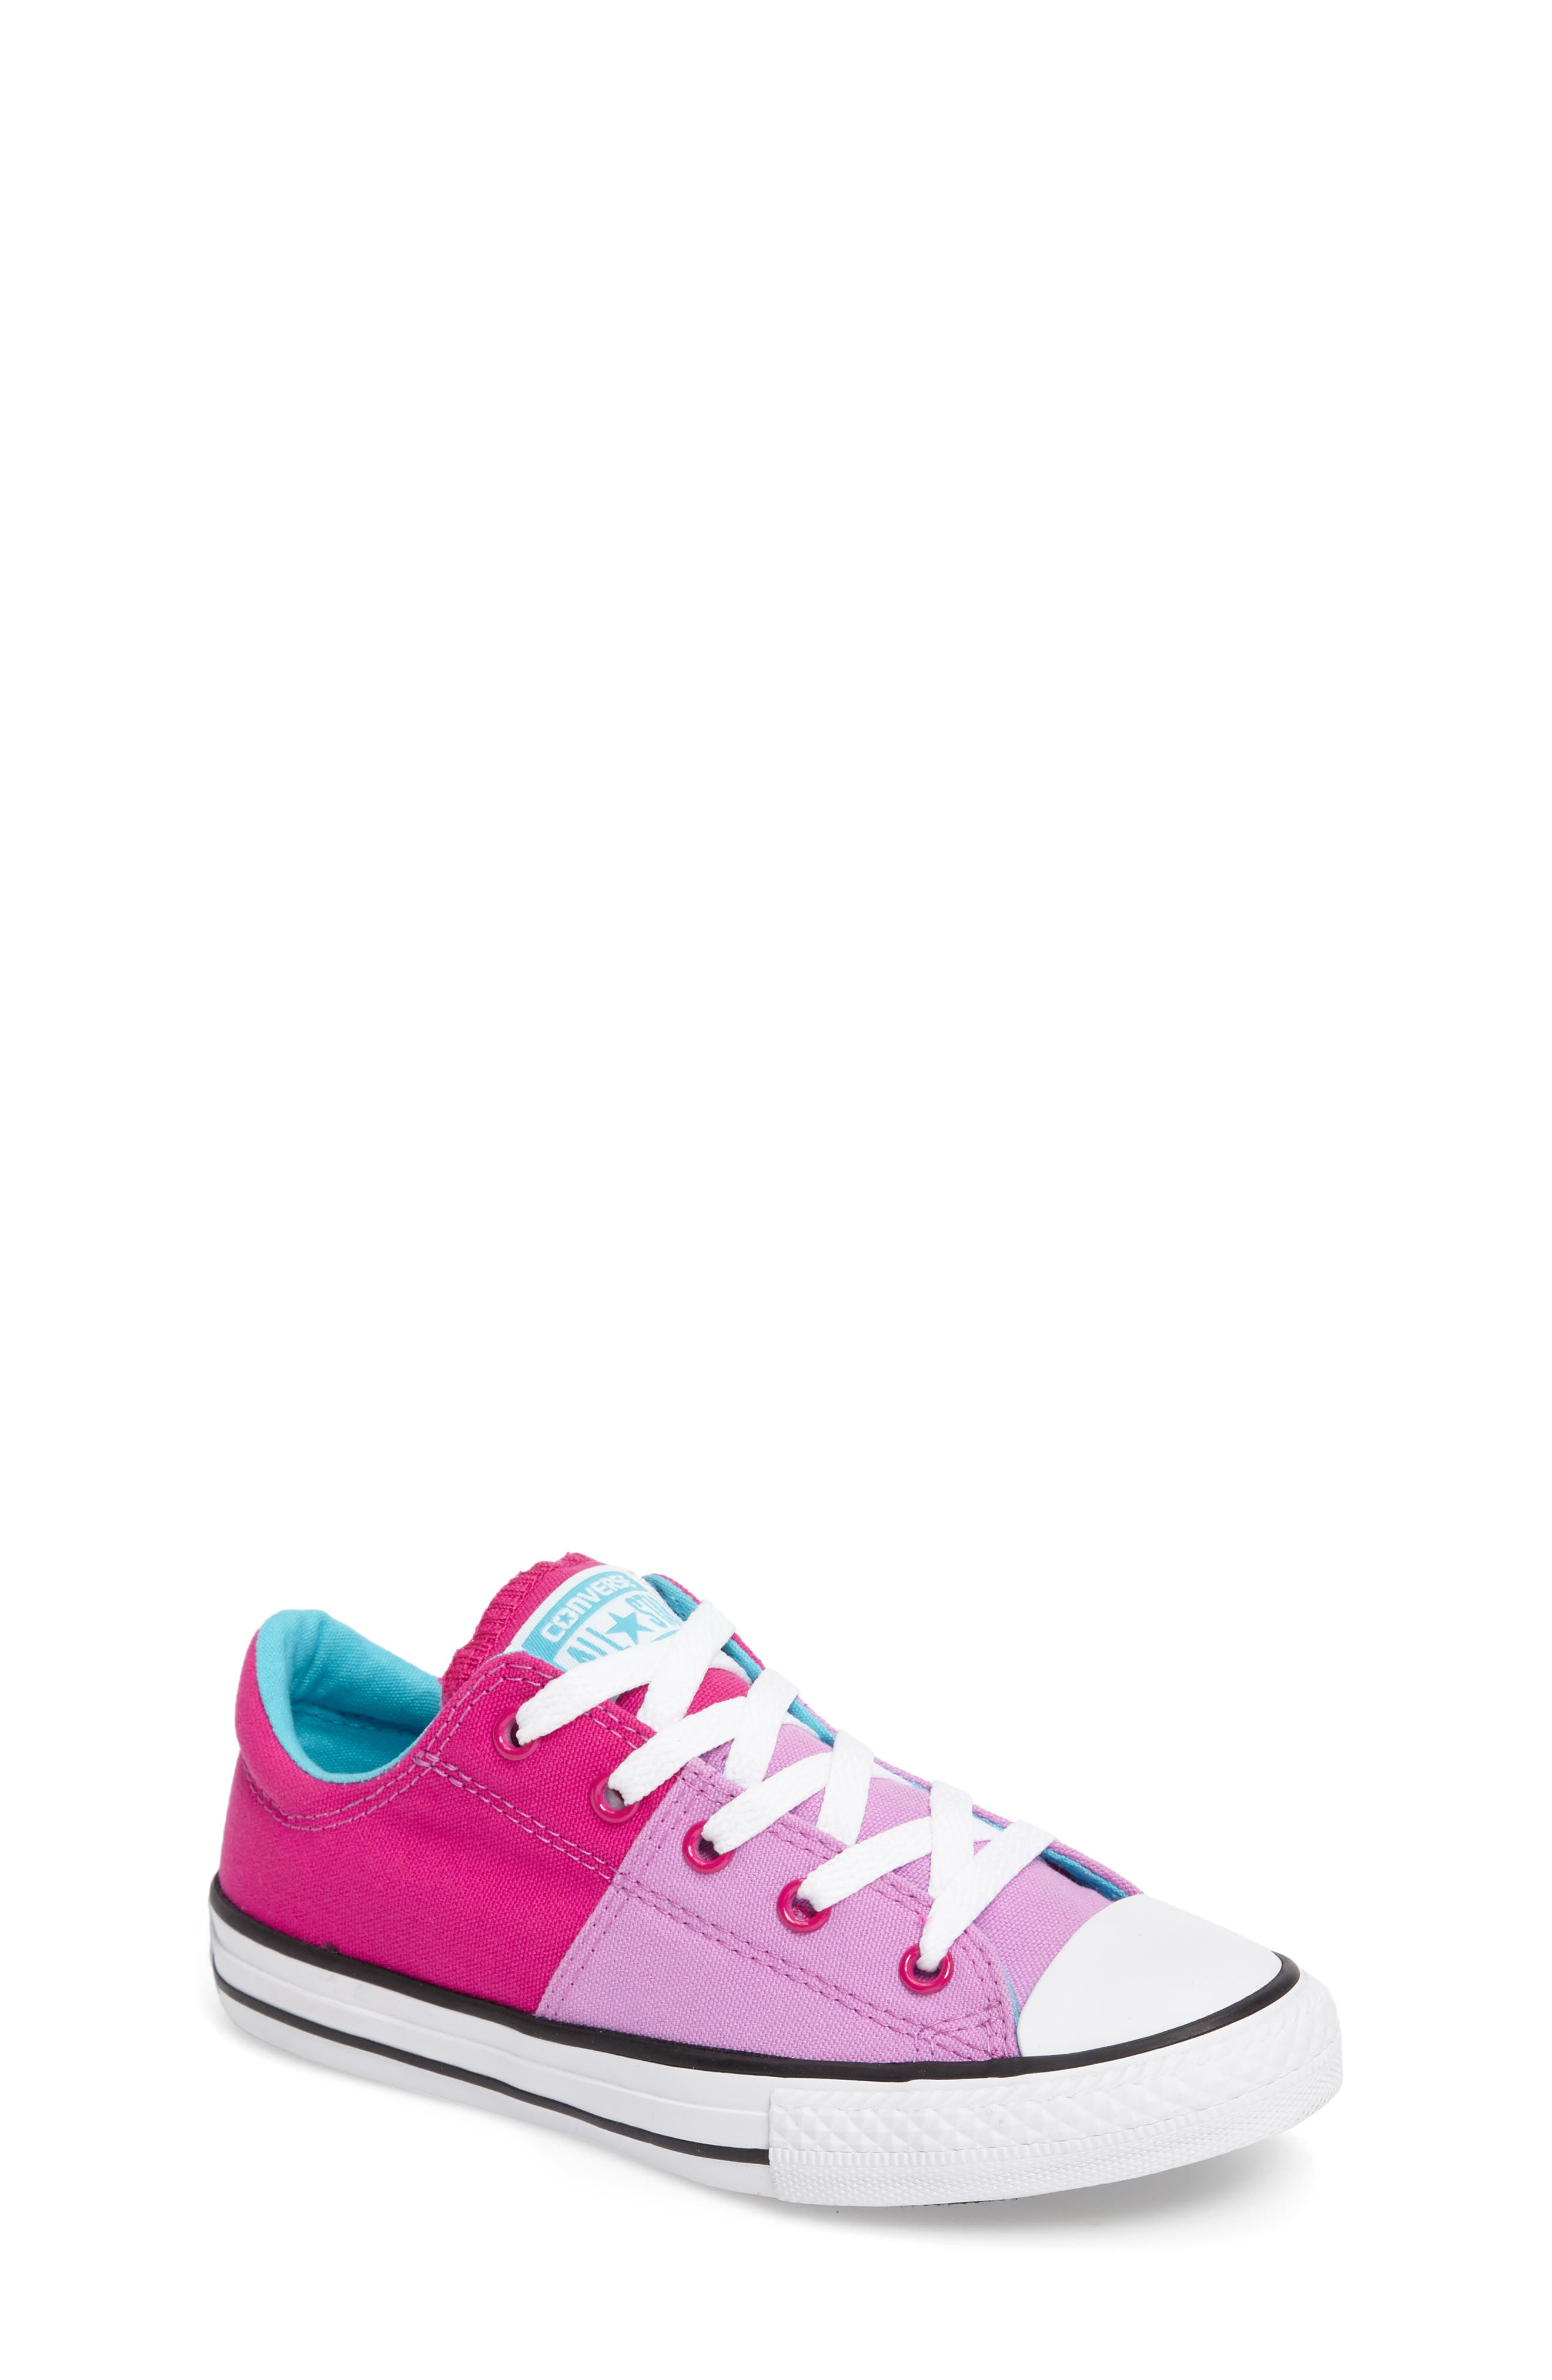 Chuck Taylor<sup>®</sup> All Star<sup>®</sup> Madison Low Top Sneaker,                             Main thumbnail 6, color,